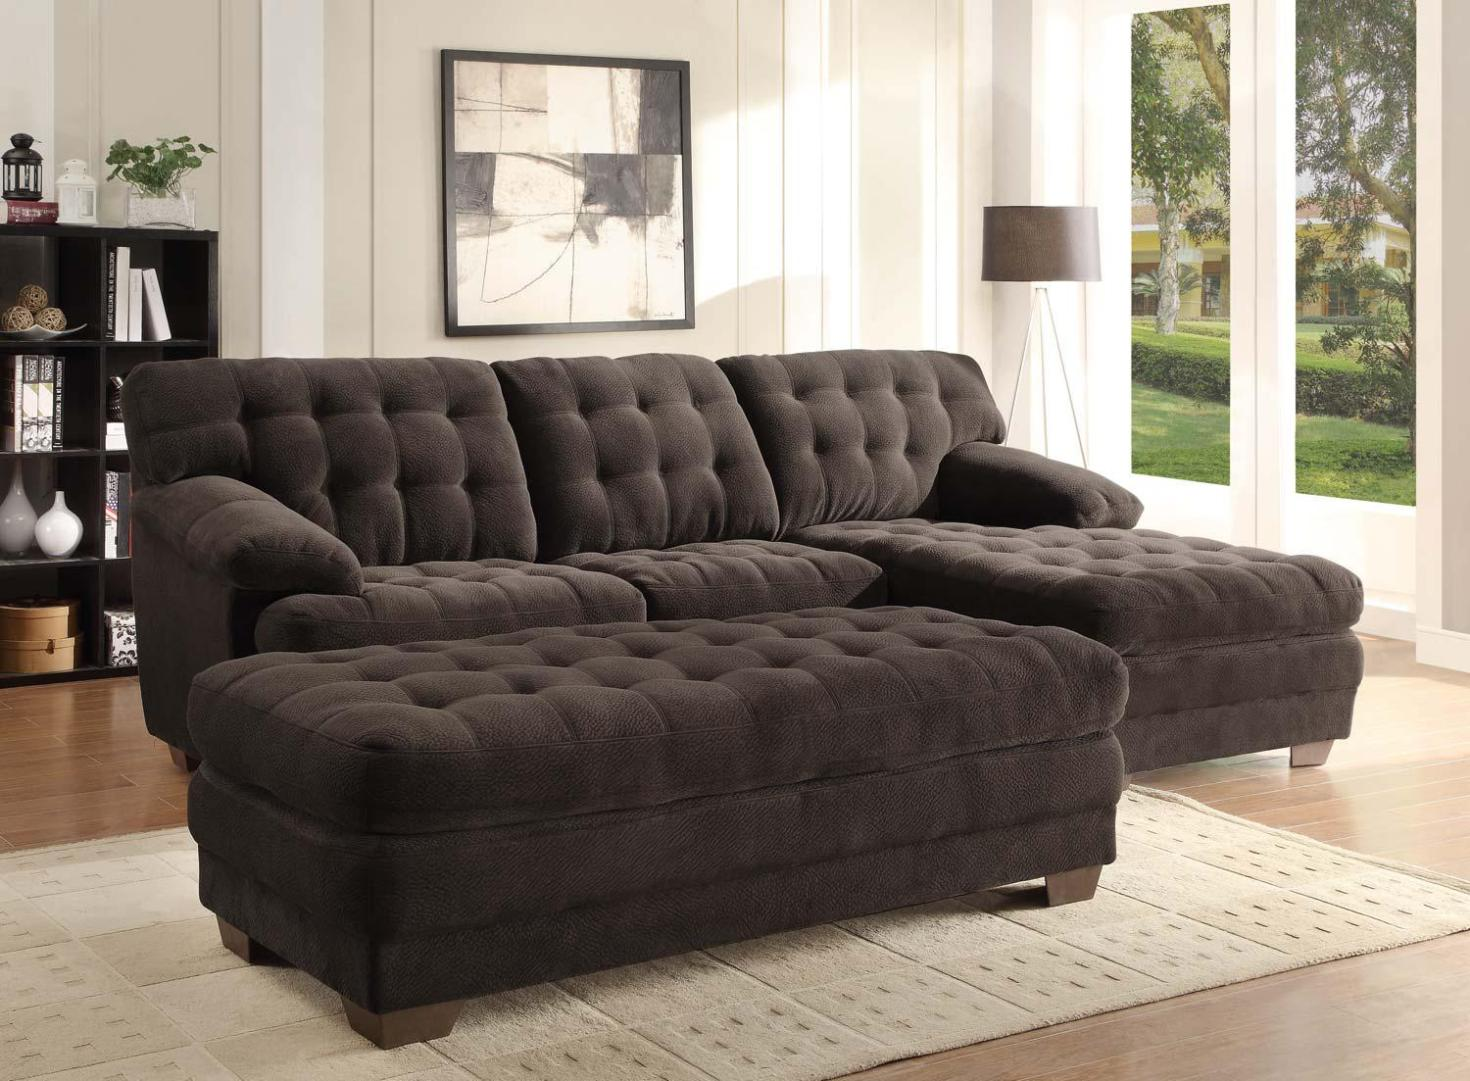 Image of: Black Microfiber Sectional Couch